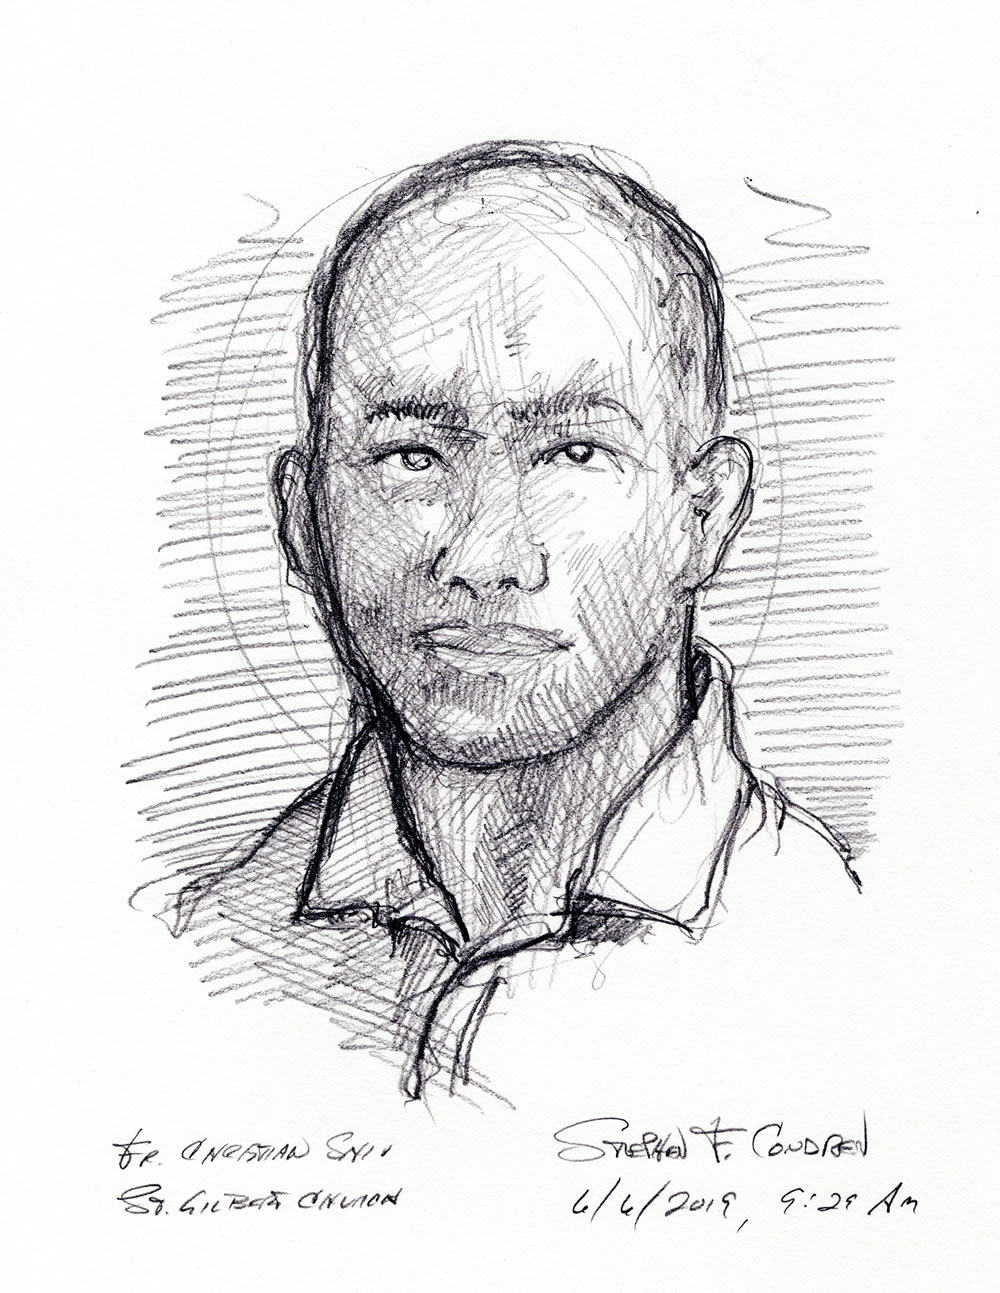 Father Christian Shiu #309Z, Catholic priest Pencil drawing by artist Stephen F. Condren at Condren Galleries.